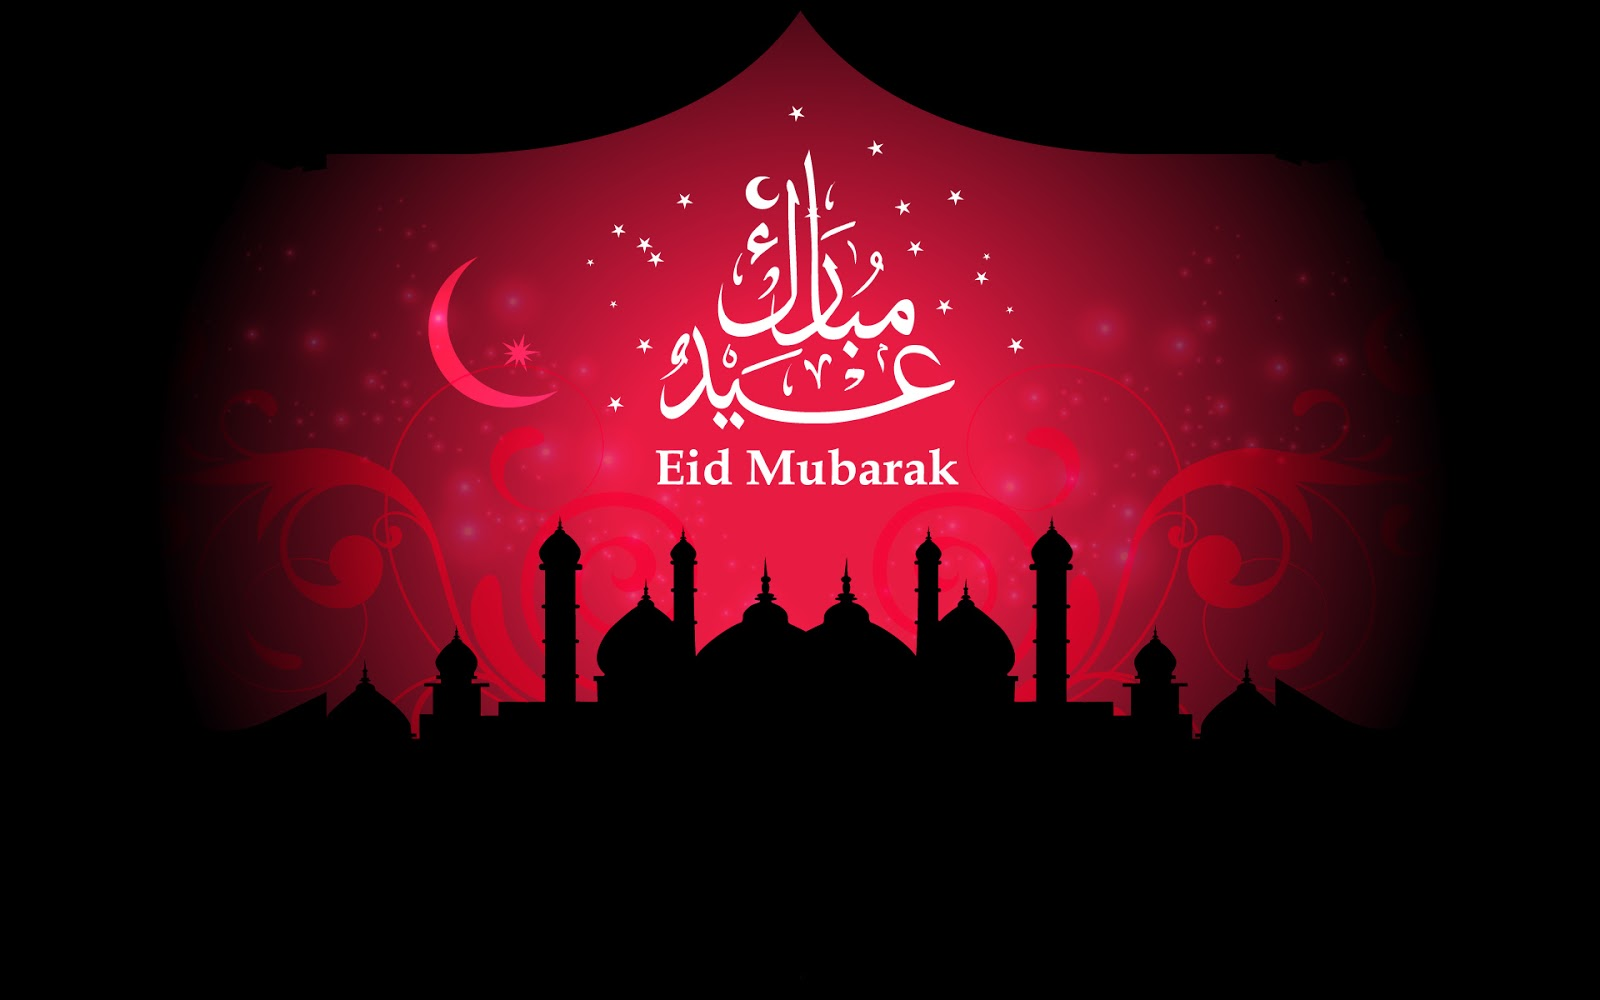 Download Eid Mubarak Wallpaper Hd Images Pictures For Mobile